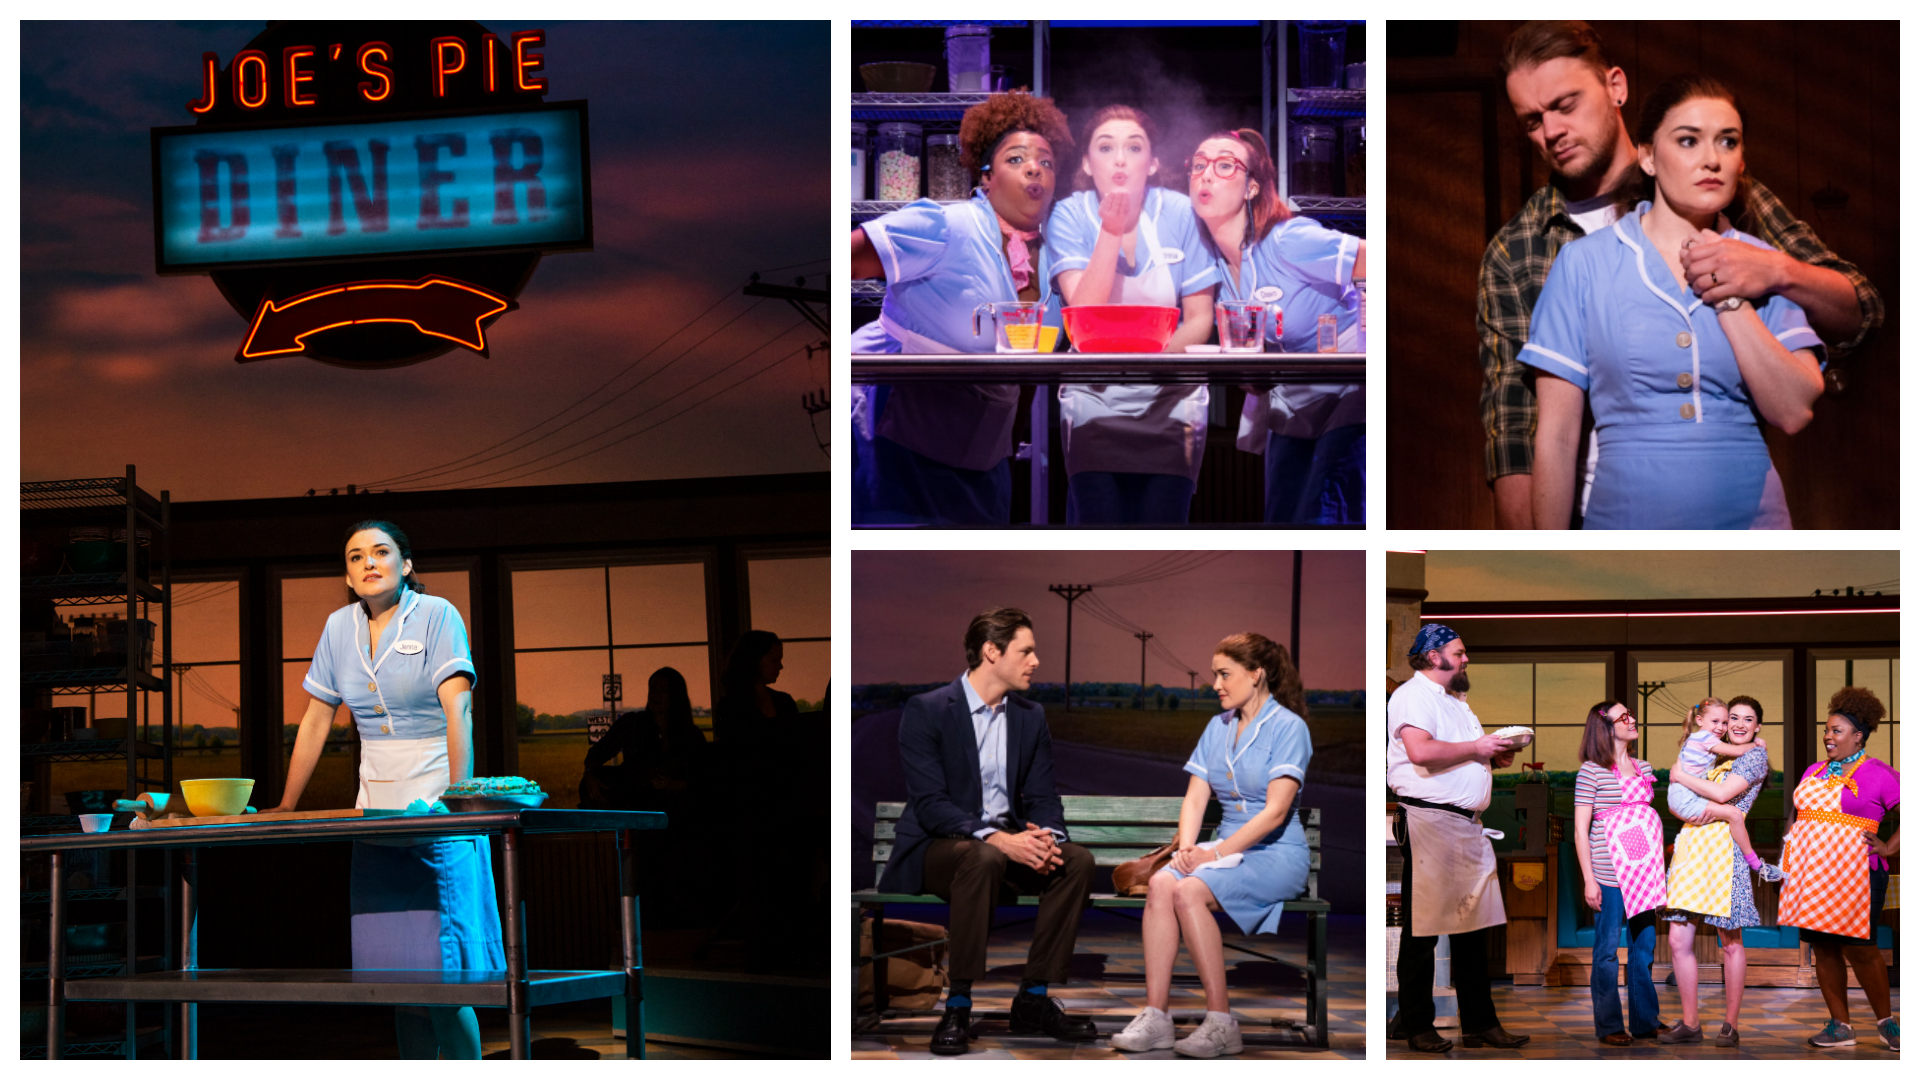 Scenes from Waitress The Musical and Joe's Pie Diner. Christine Dwyer, Maiesha McQueen, Ephie Aardema, Steven Good, Norah Morley.